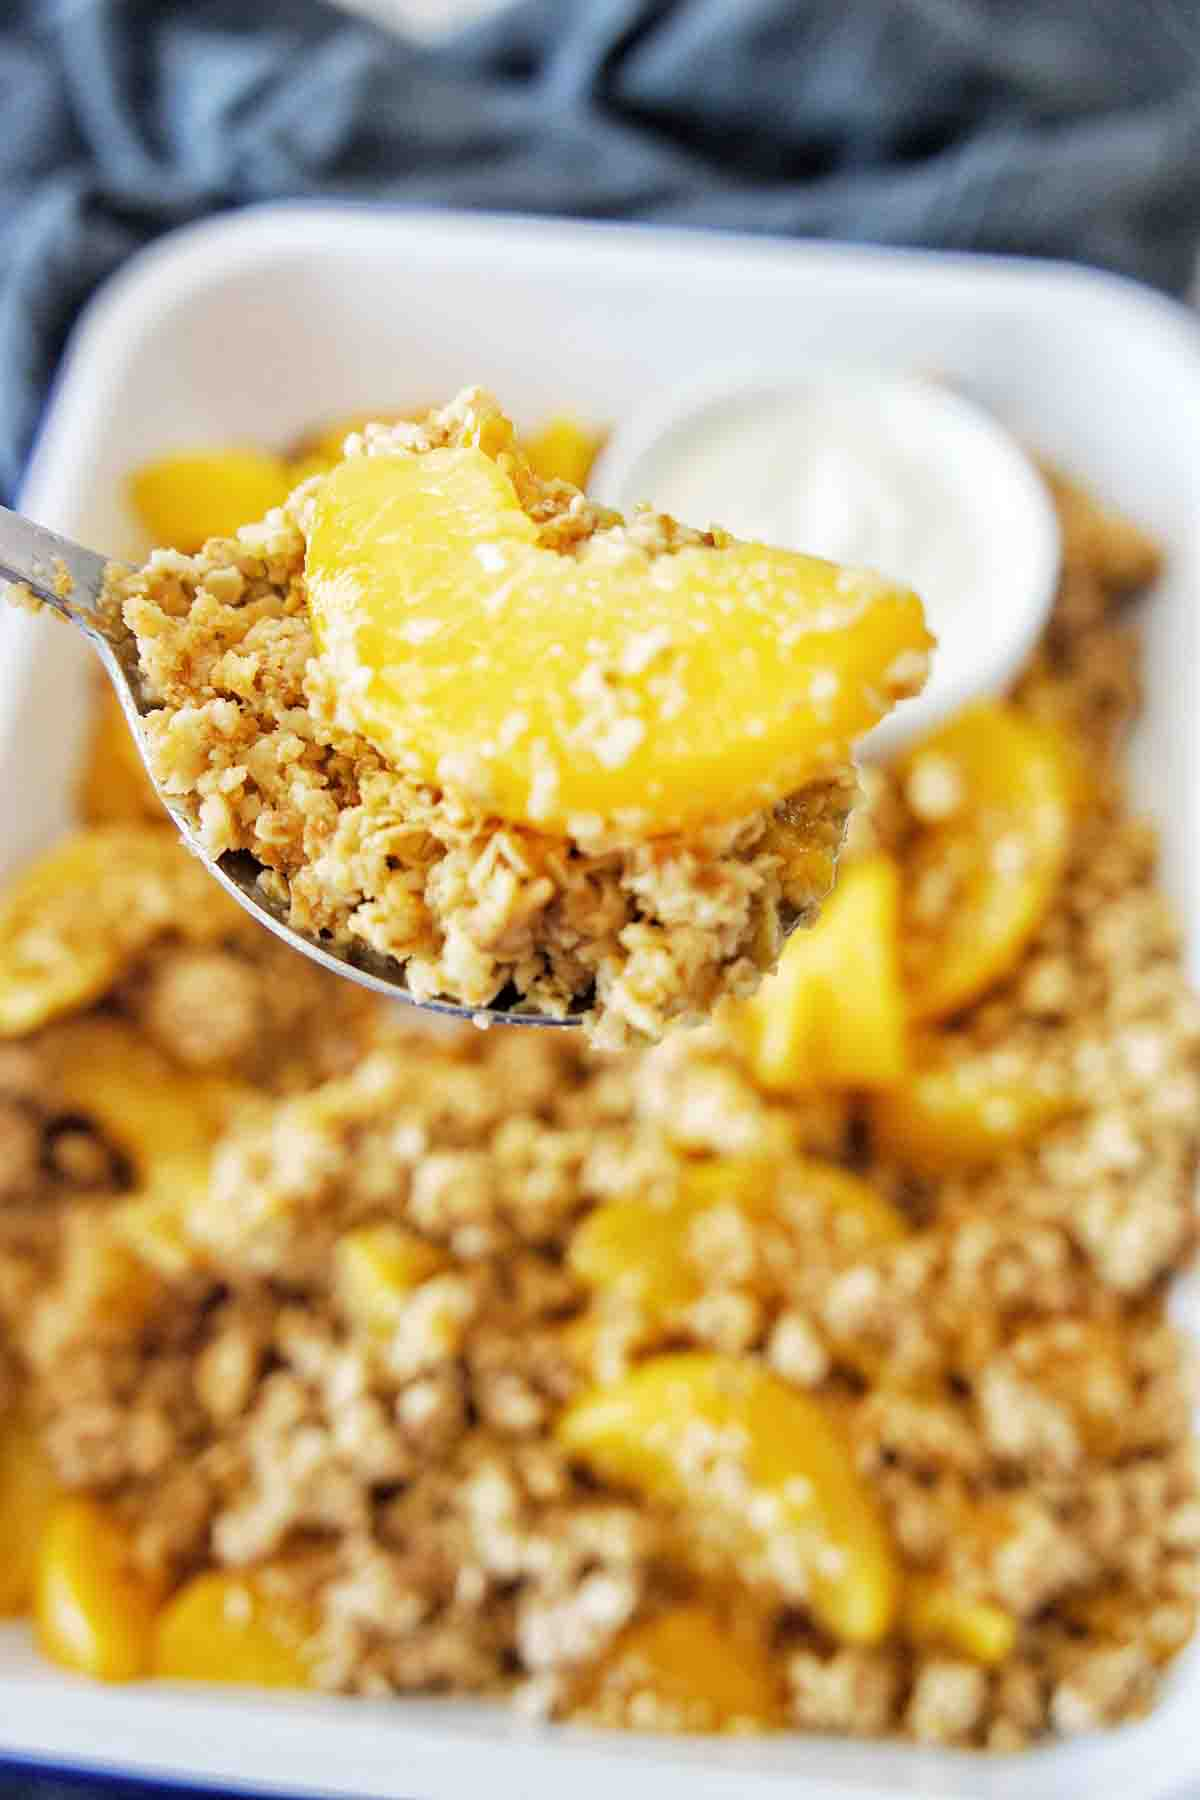 Spoon holding peach crumble above white baking tray